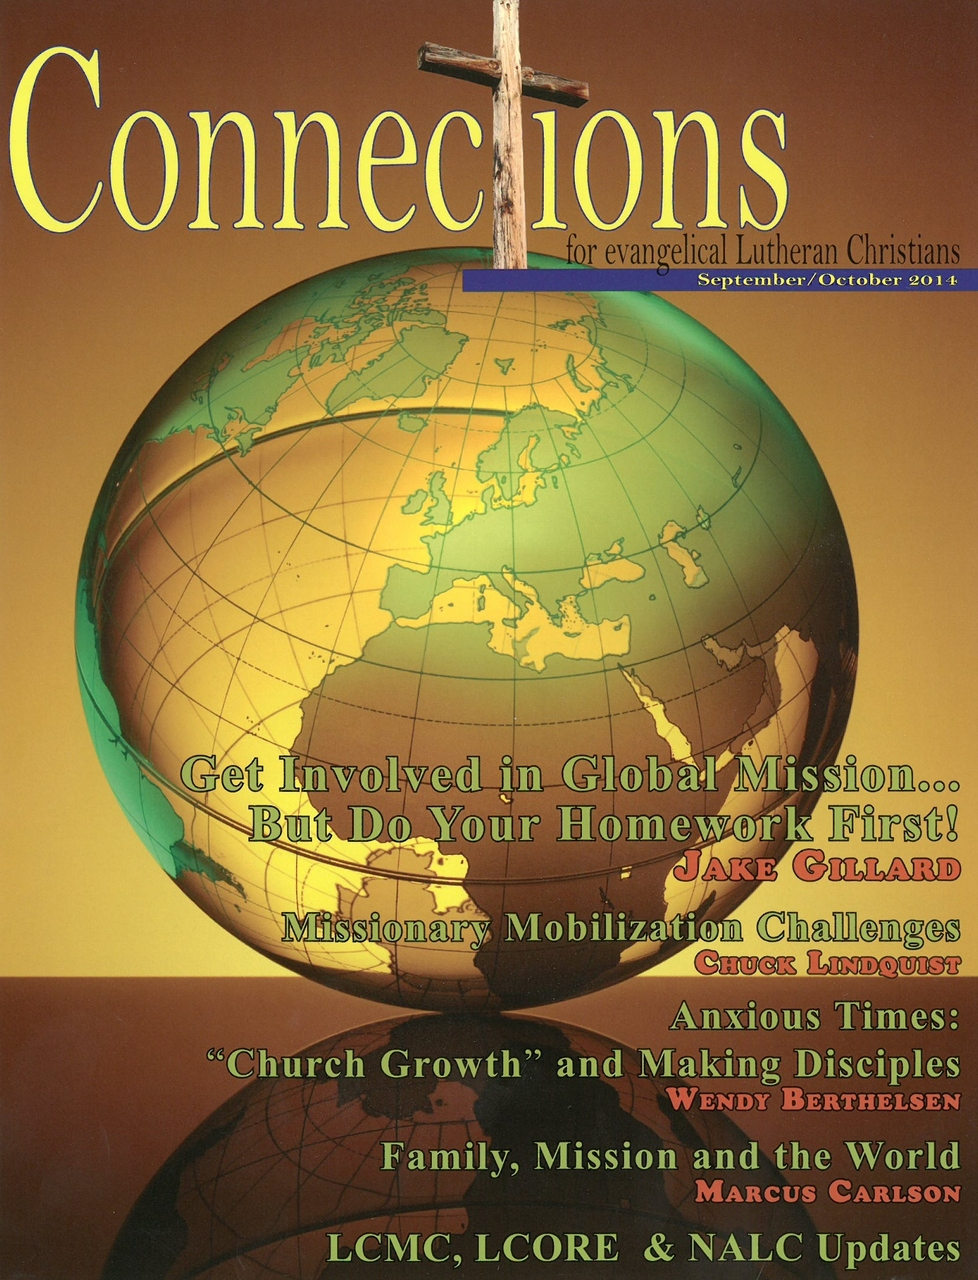 Connections (September/October 2014) P-D145